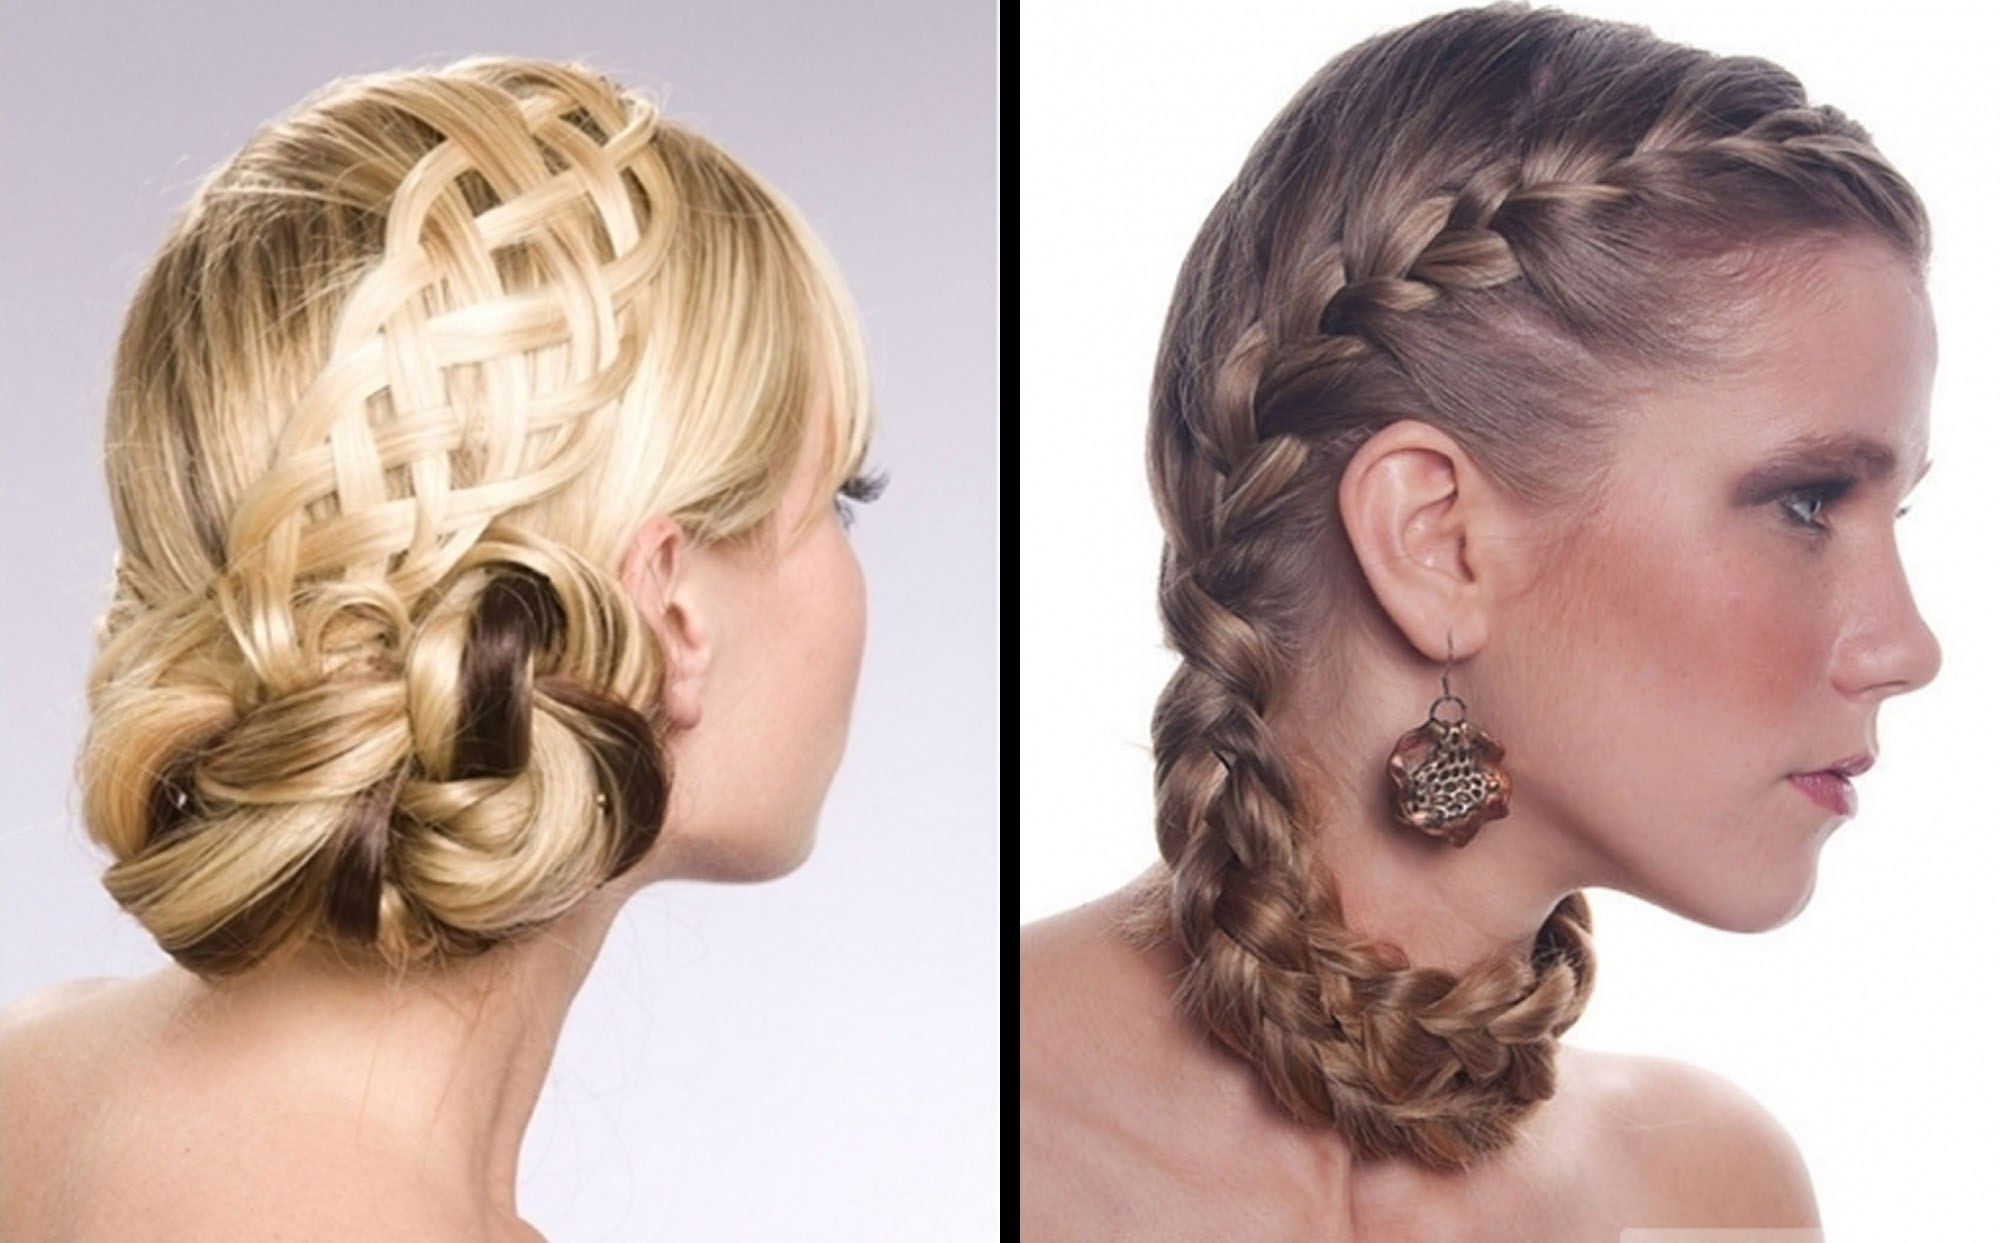 Prom Hairstyles For Medium Hair Women (View 12 of 20)